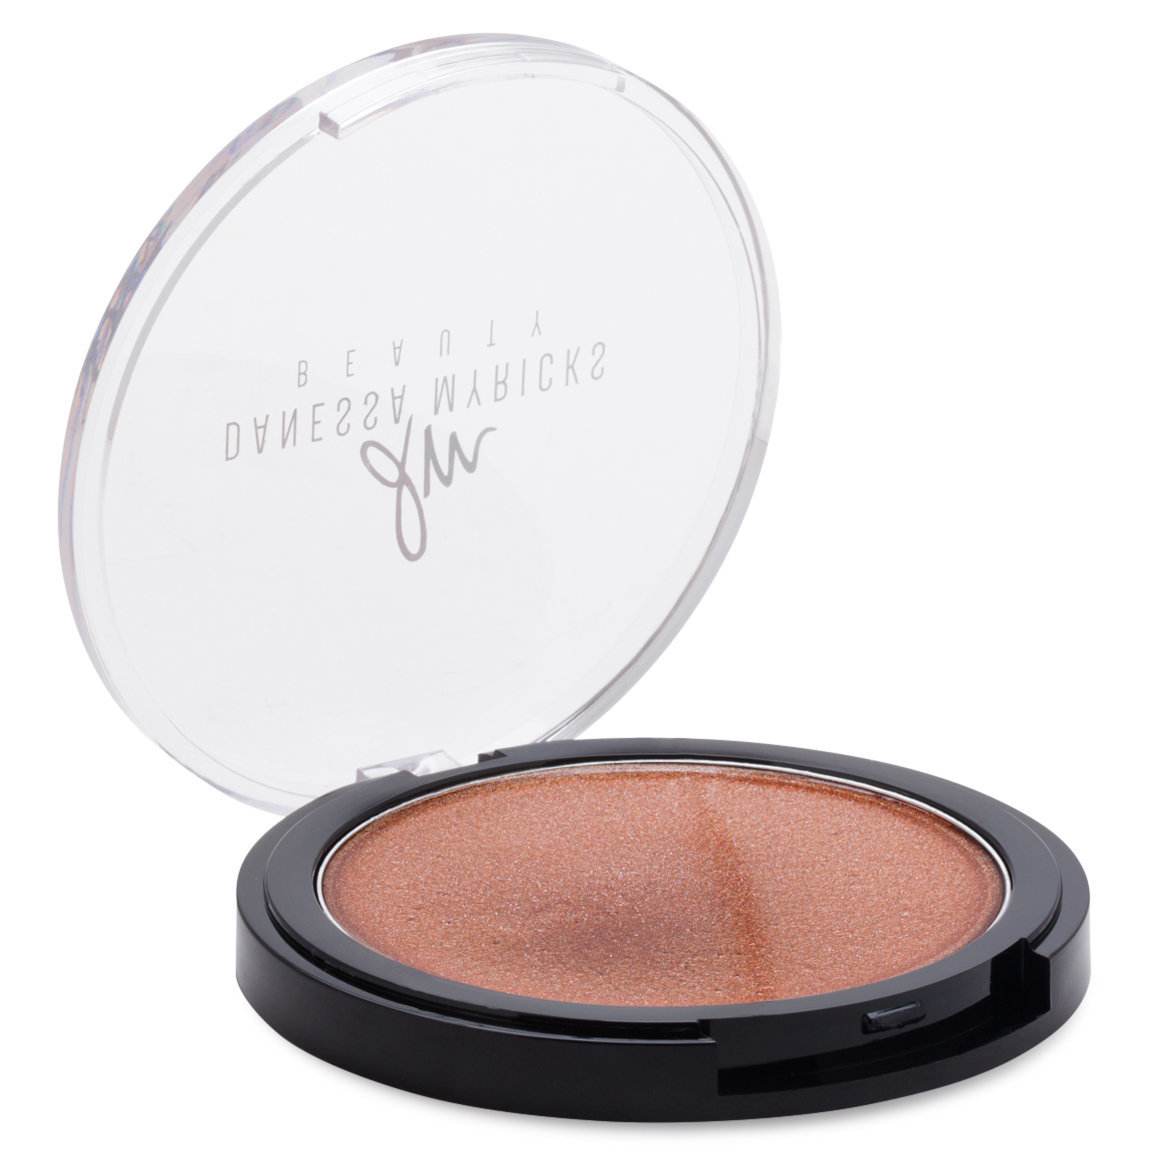 Danesssa Myricks Beauty   Dew Wet Balm - Fire Water